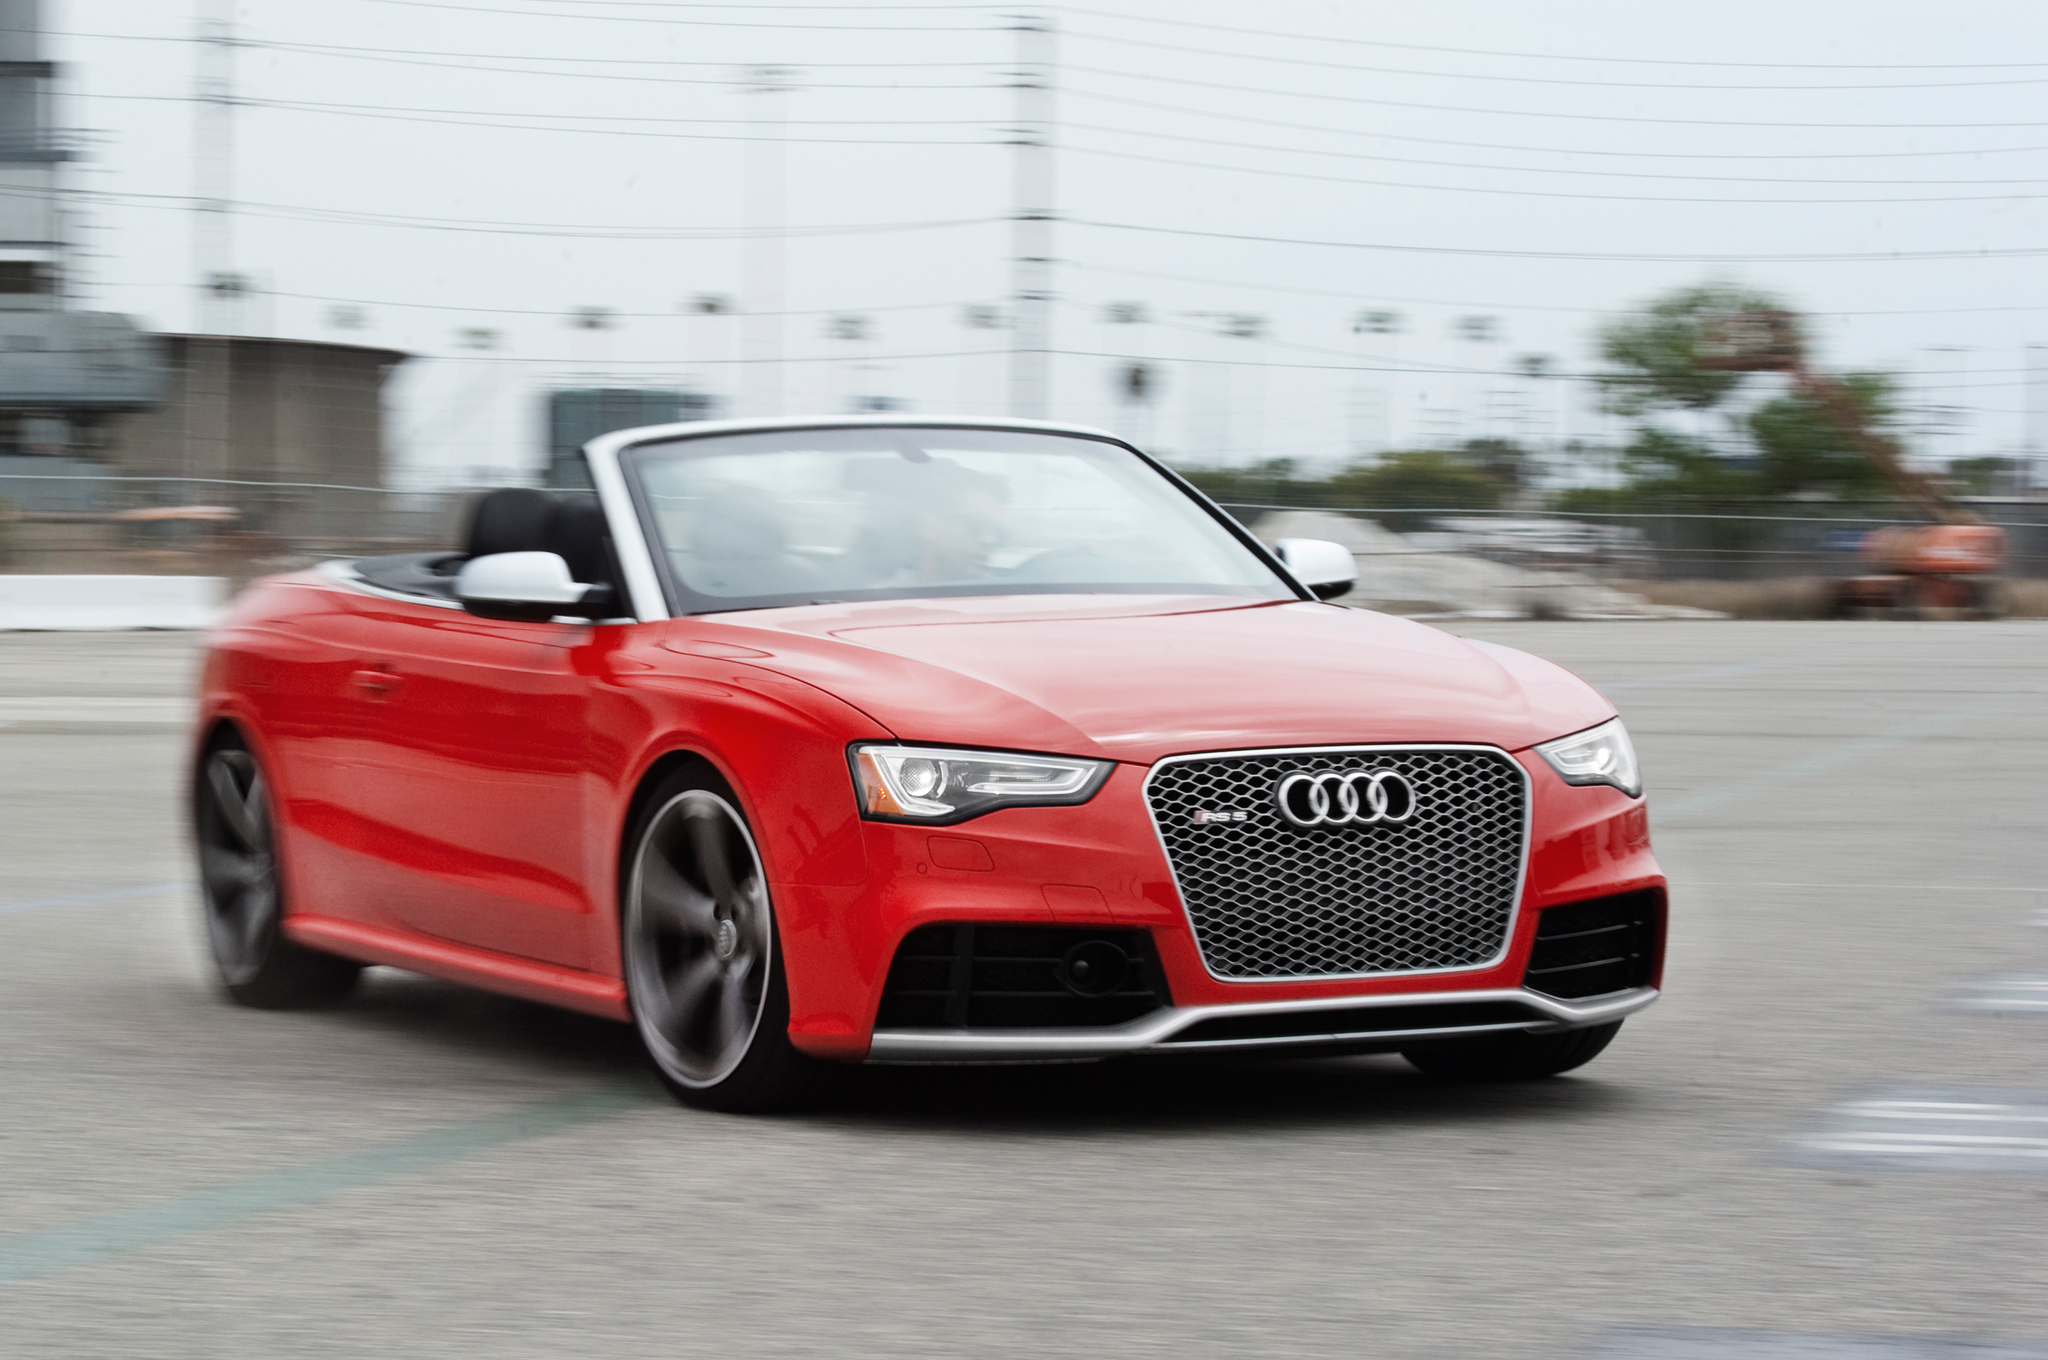 2013 Audi Rs 5 Cabriolet First Test Motortrend